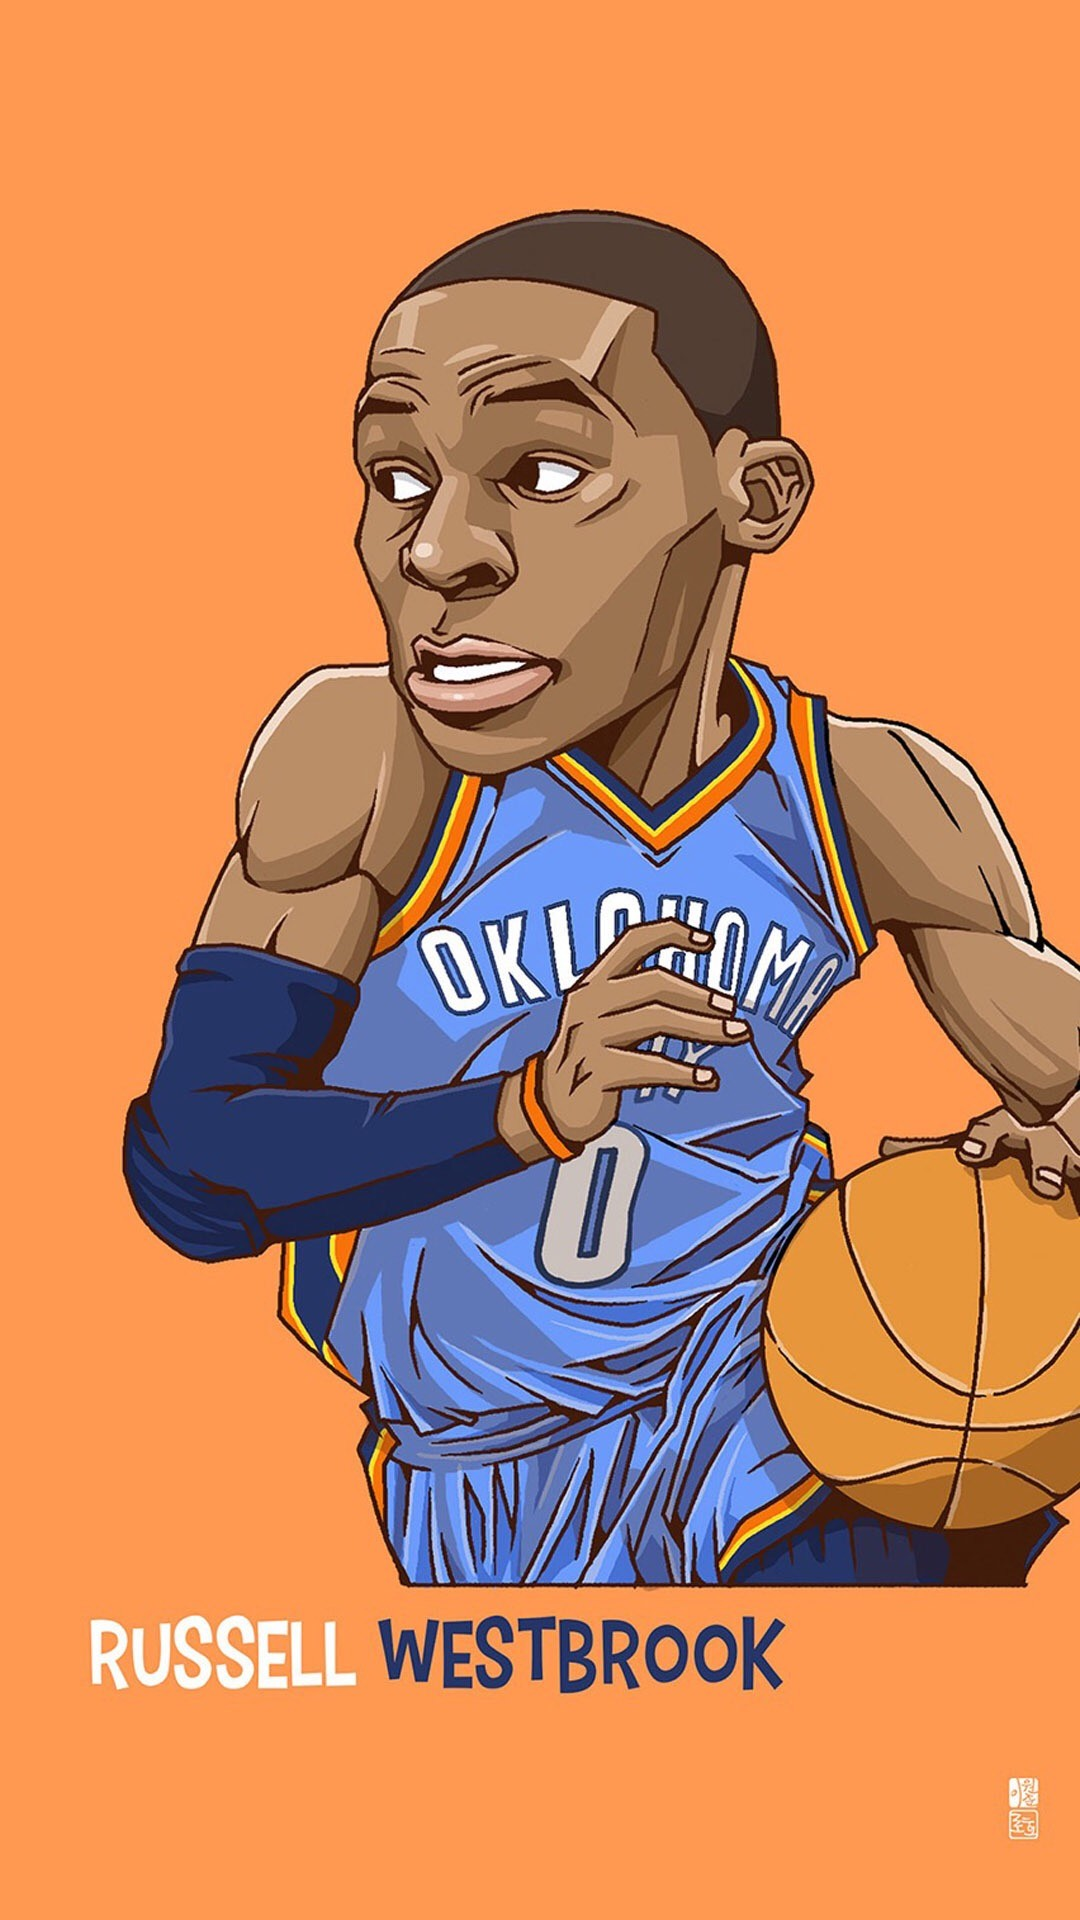 Russell Westbrook. Tap to see Collection of Famous NBA Basketball Players  Cute Cartoon Wallpapers for